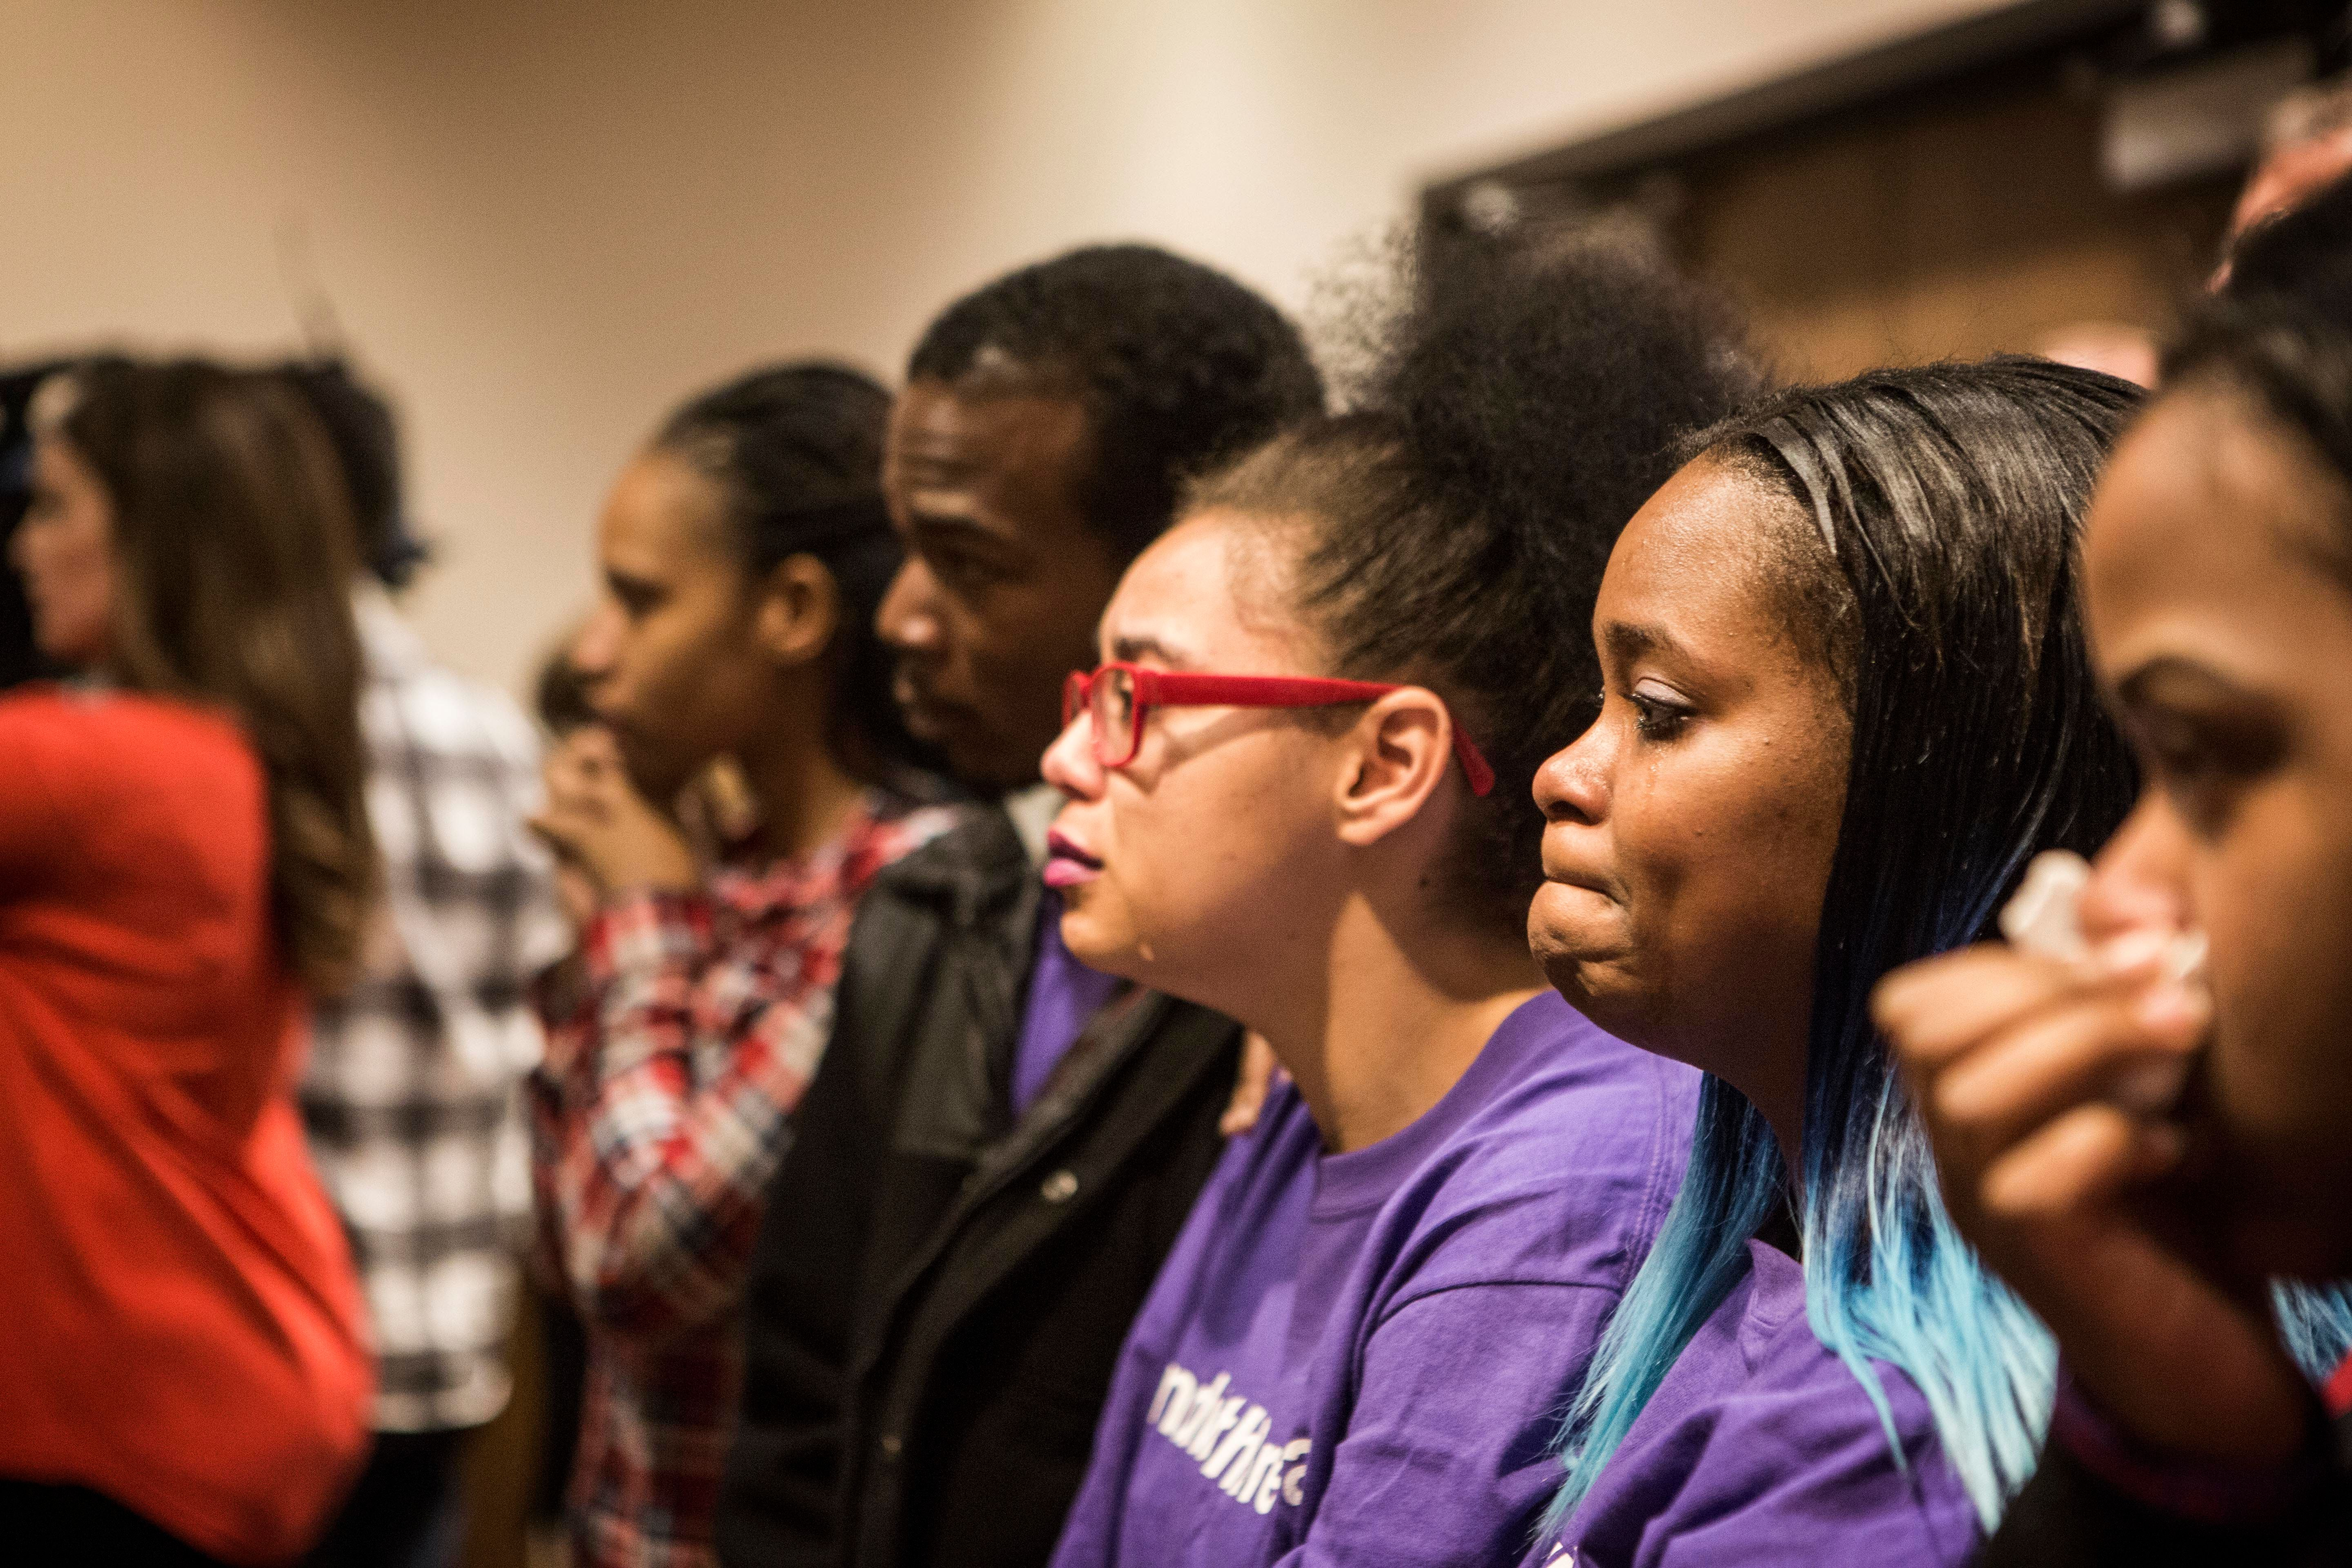 Family and supporters of Bresha Meadows, ateenwho killed her allegedly abusive father, listen during a court hear